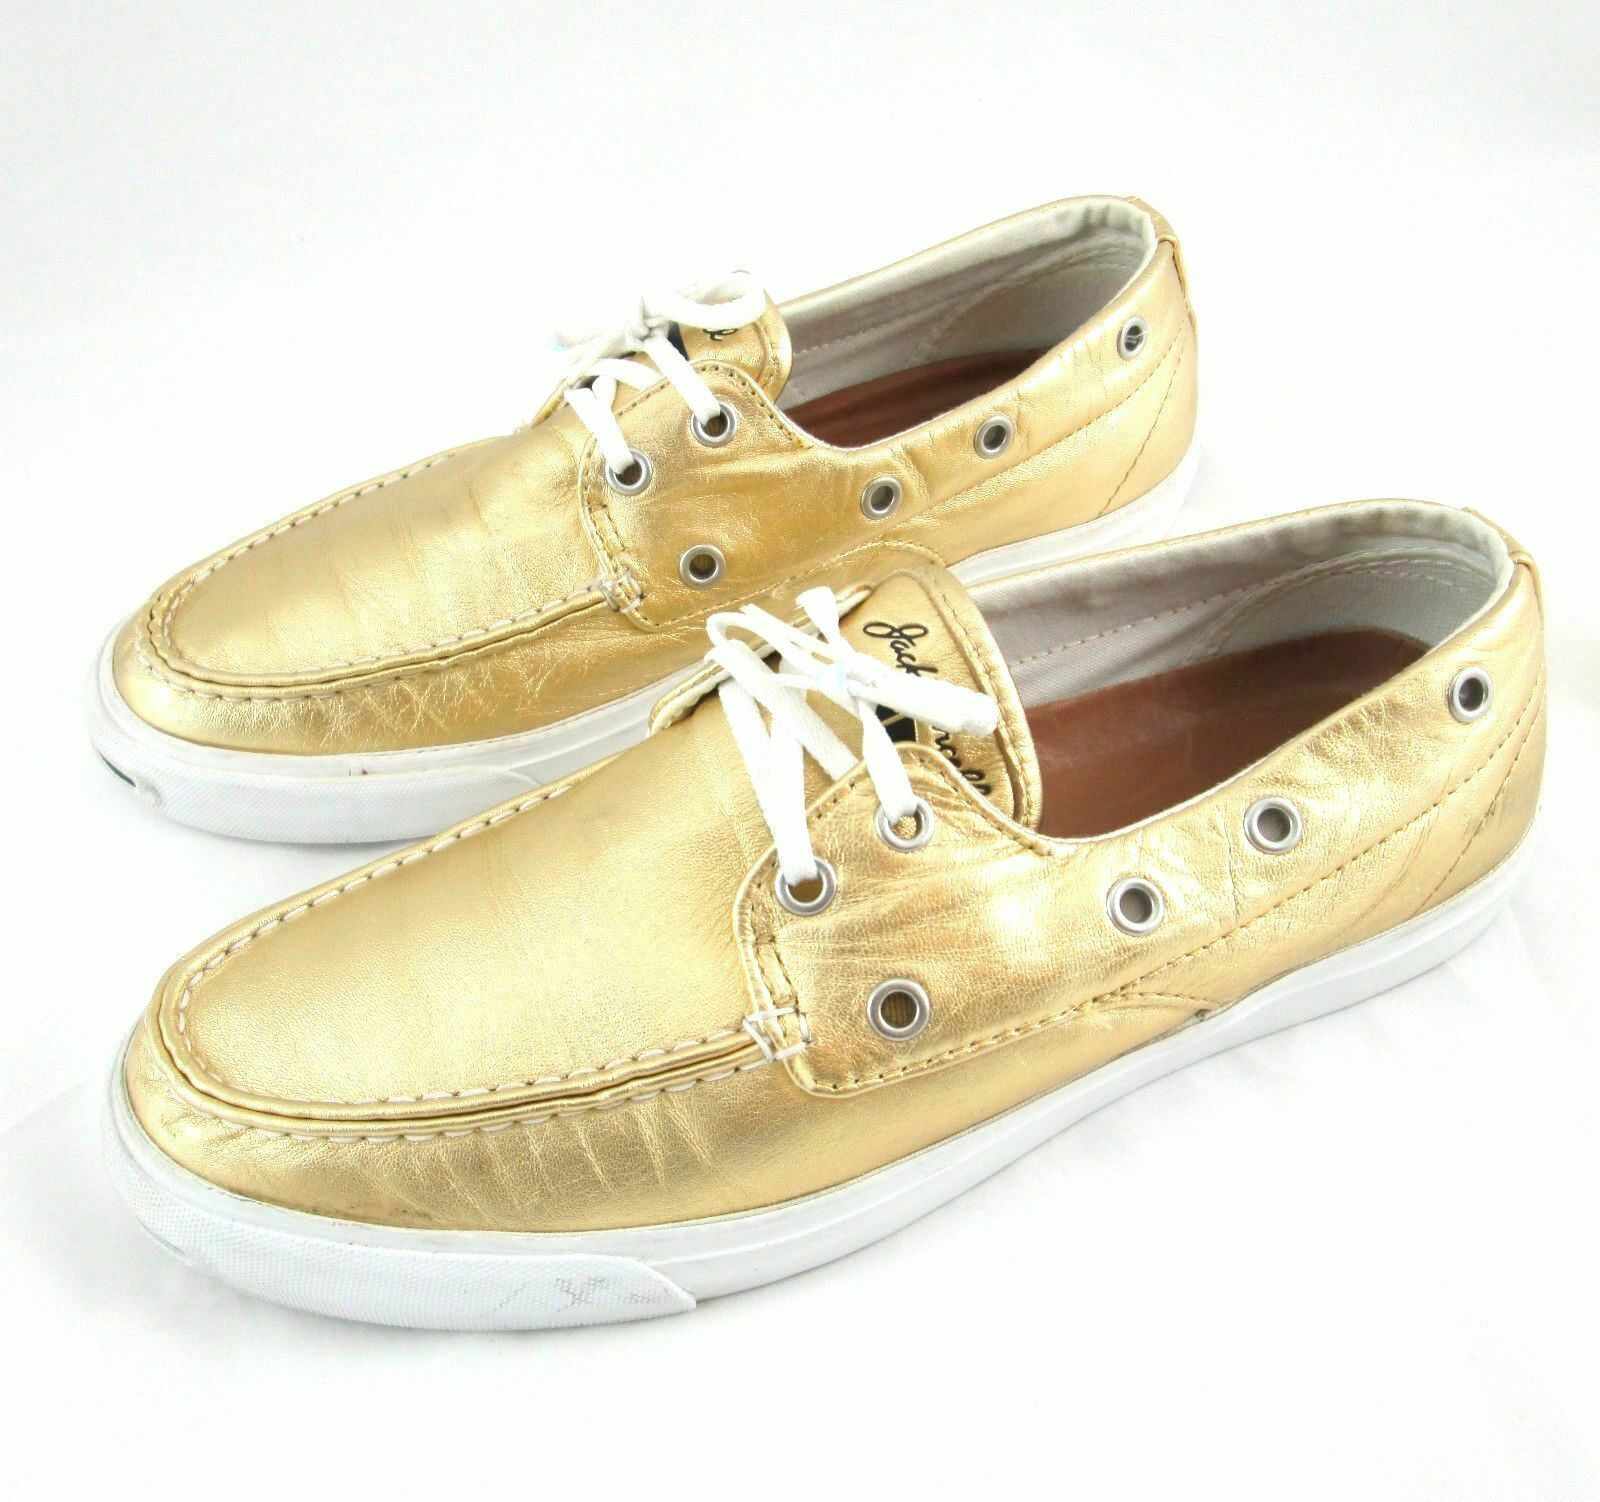 Jack Purcell Gold Leather Slip On Boat Shoes Womans 9 Metallic Limited Edition